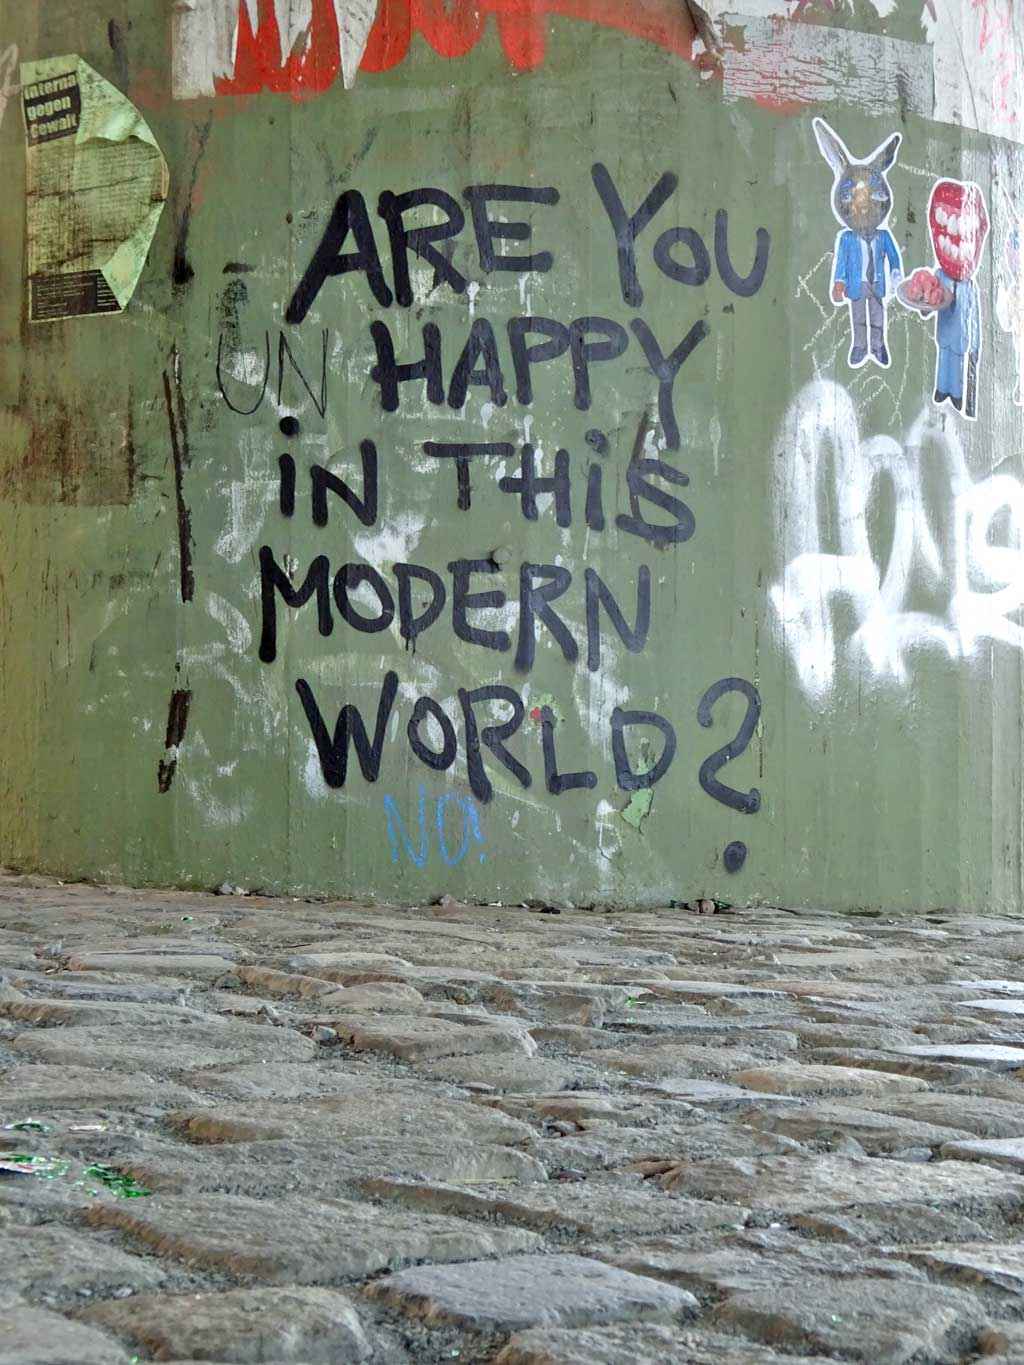 Are you happy in this modern world?